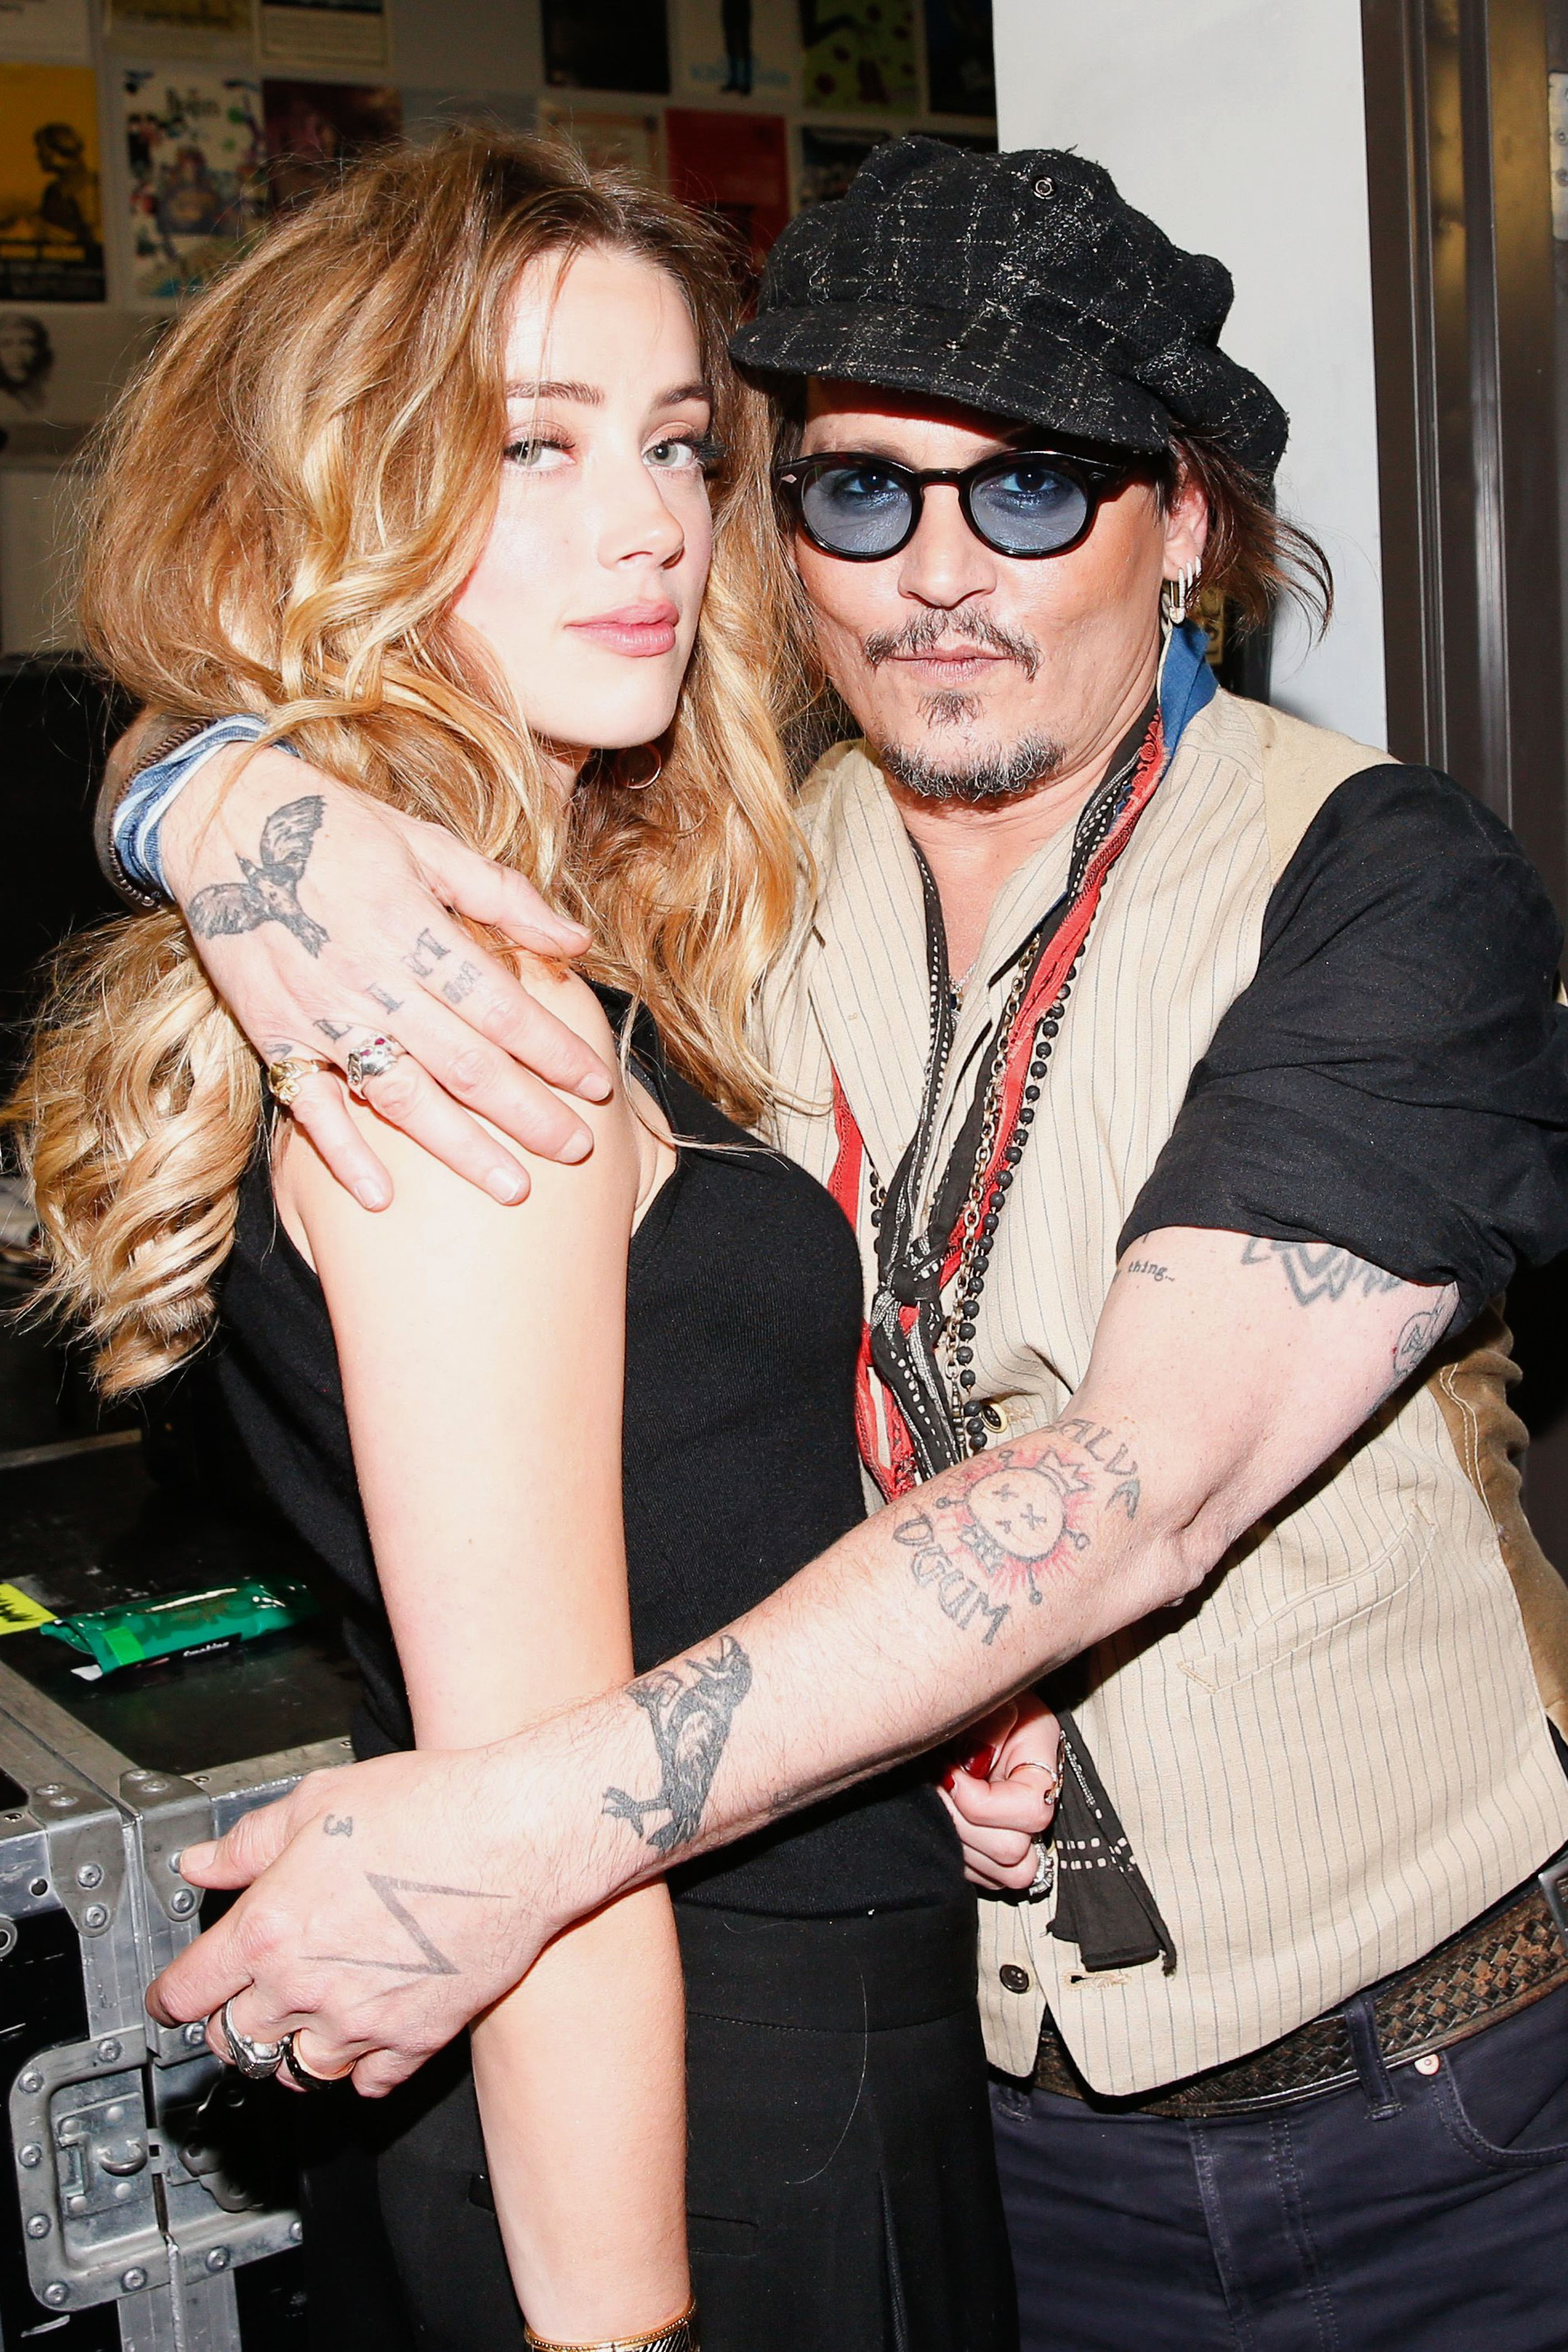 Amber Heard and Johnny Depp settle domestic violence case